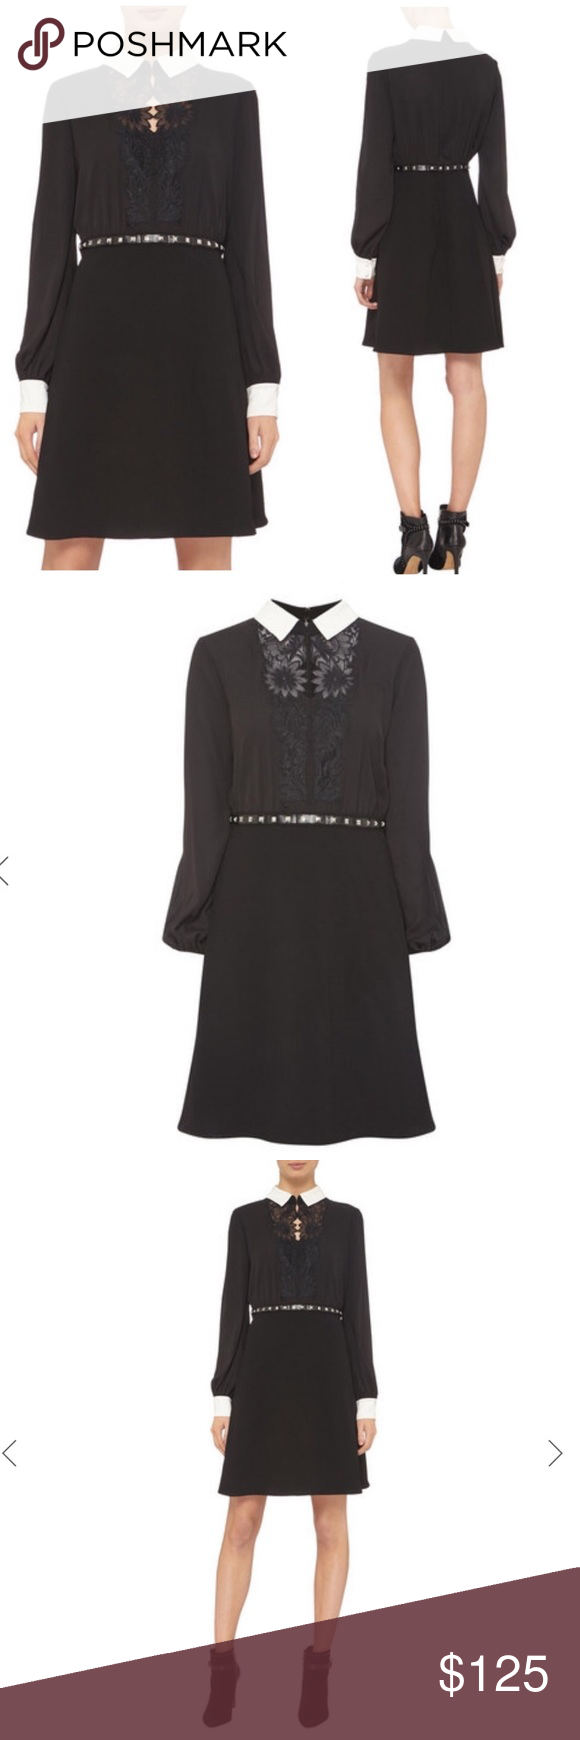 The Kooples Lace Yoke Collar Belted Dress 2 Belted Dress Clothes Design Collar Dress [ 1740 x 580 Pixel ]